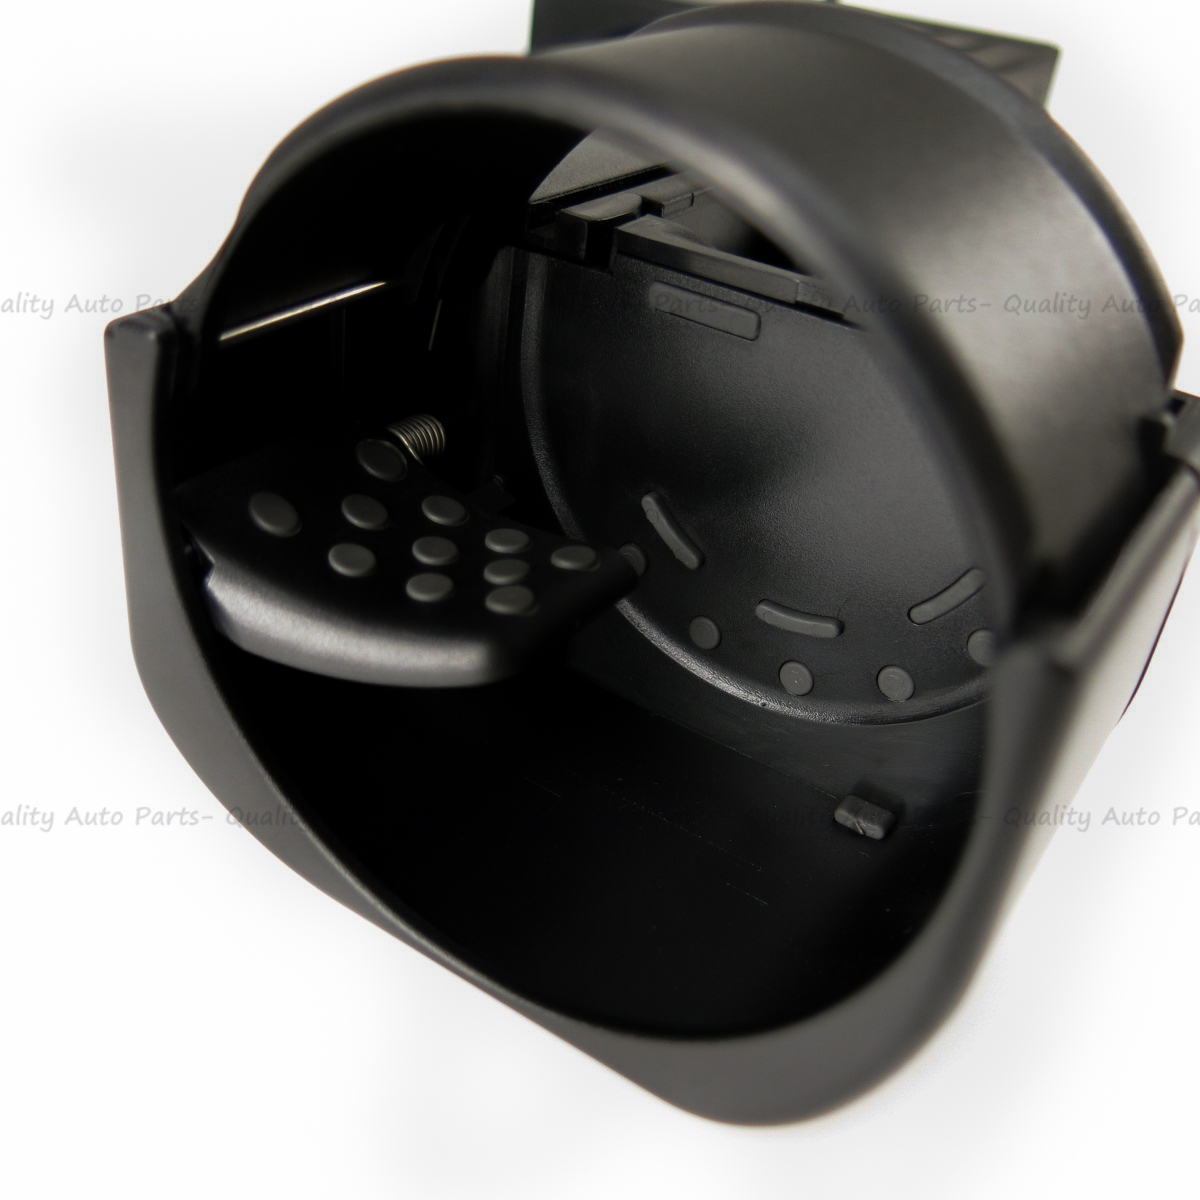 Centre console cup holder for mercedes benz e class c219 for 2006 mercedes benz cls500 cup holder